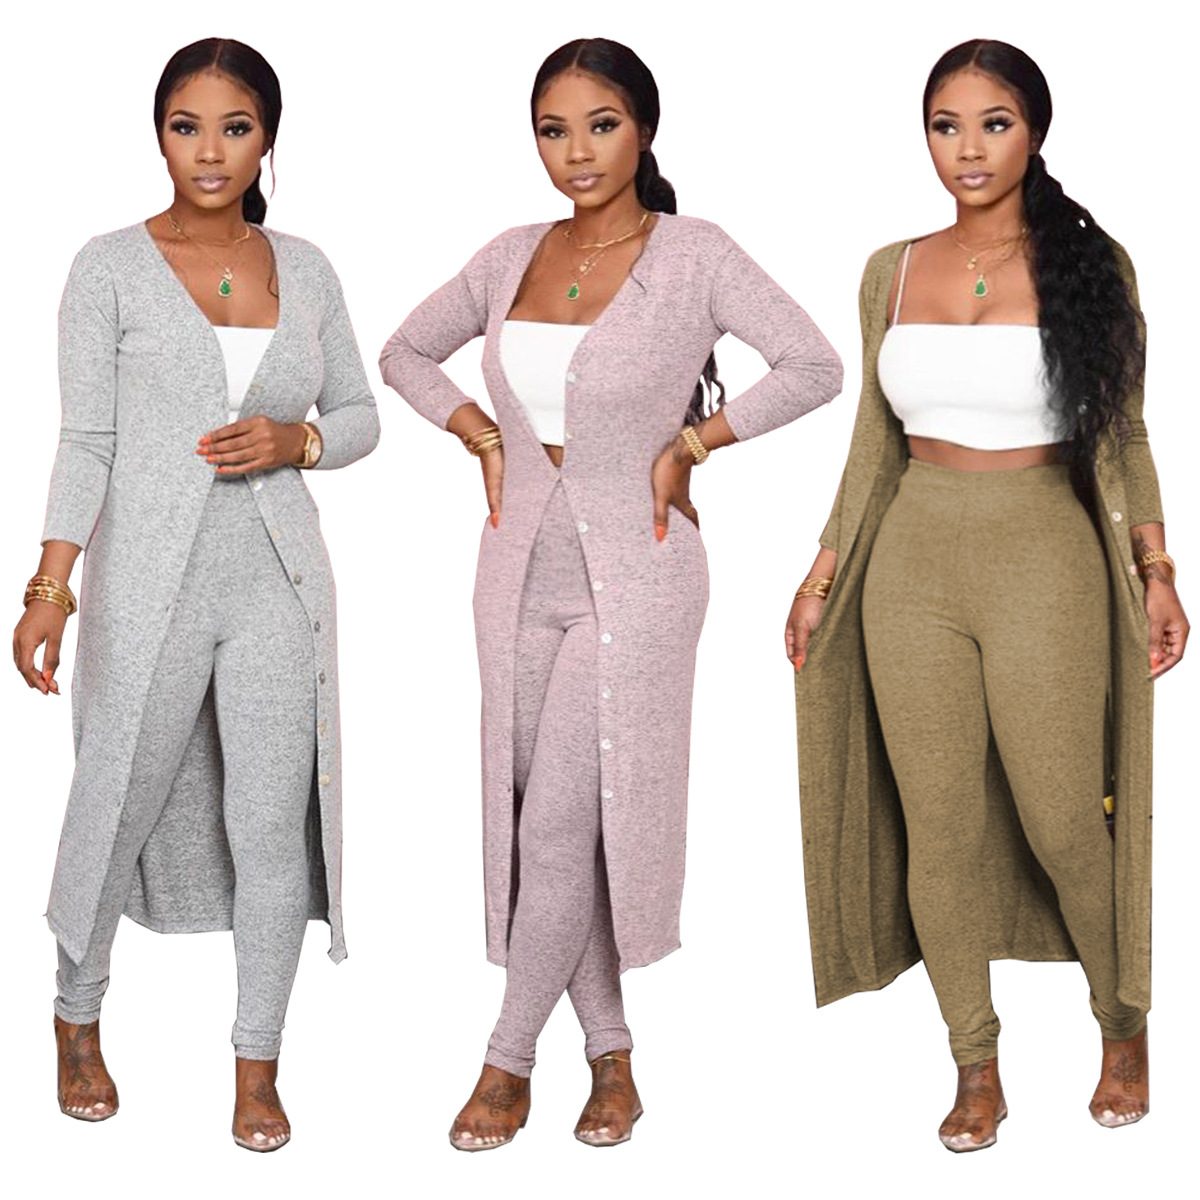 M733 2020 Fashion fall winter two piece pants sets outfits long cardigan for women